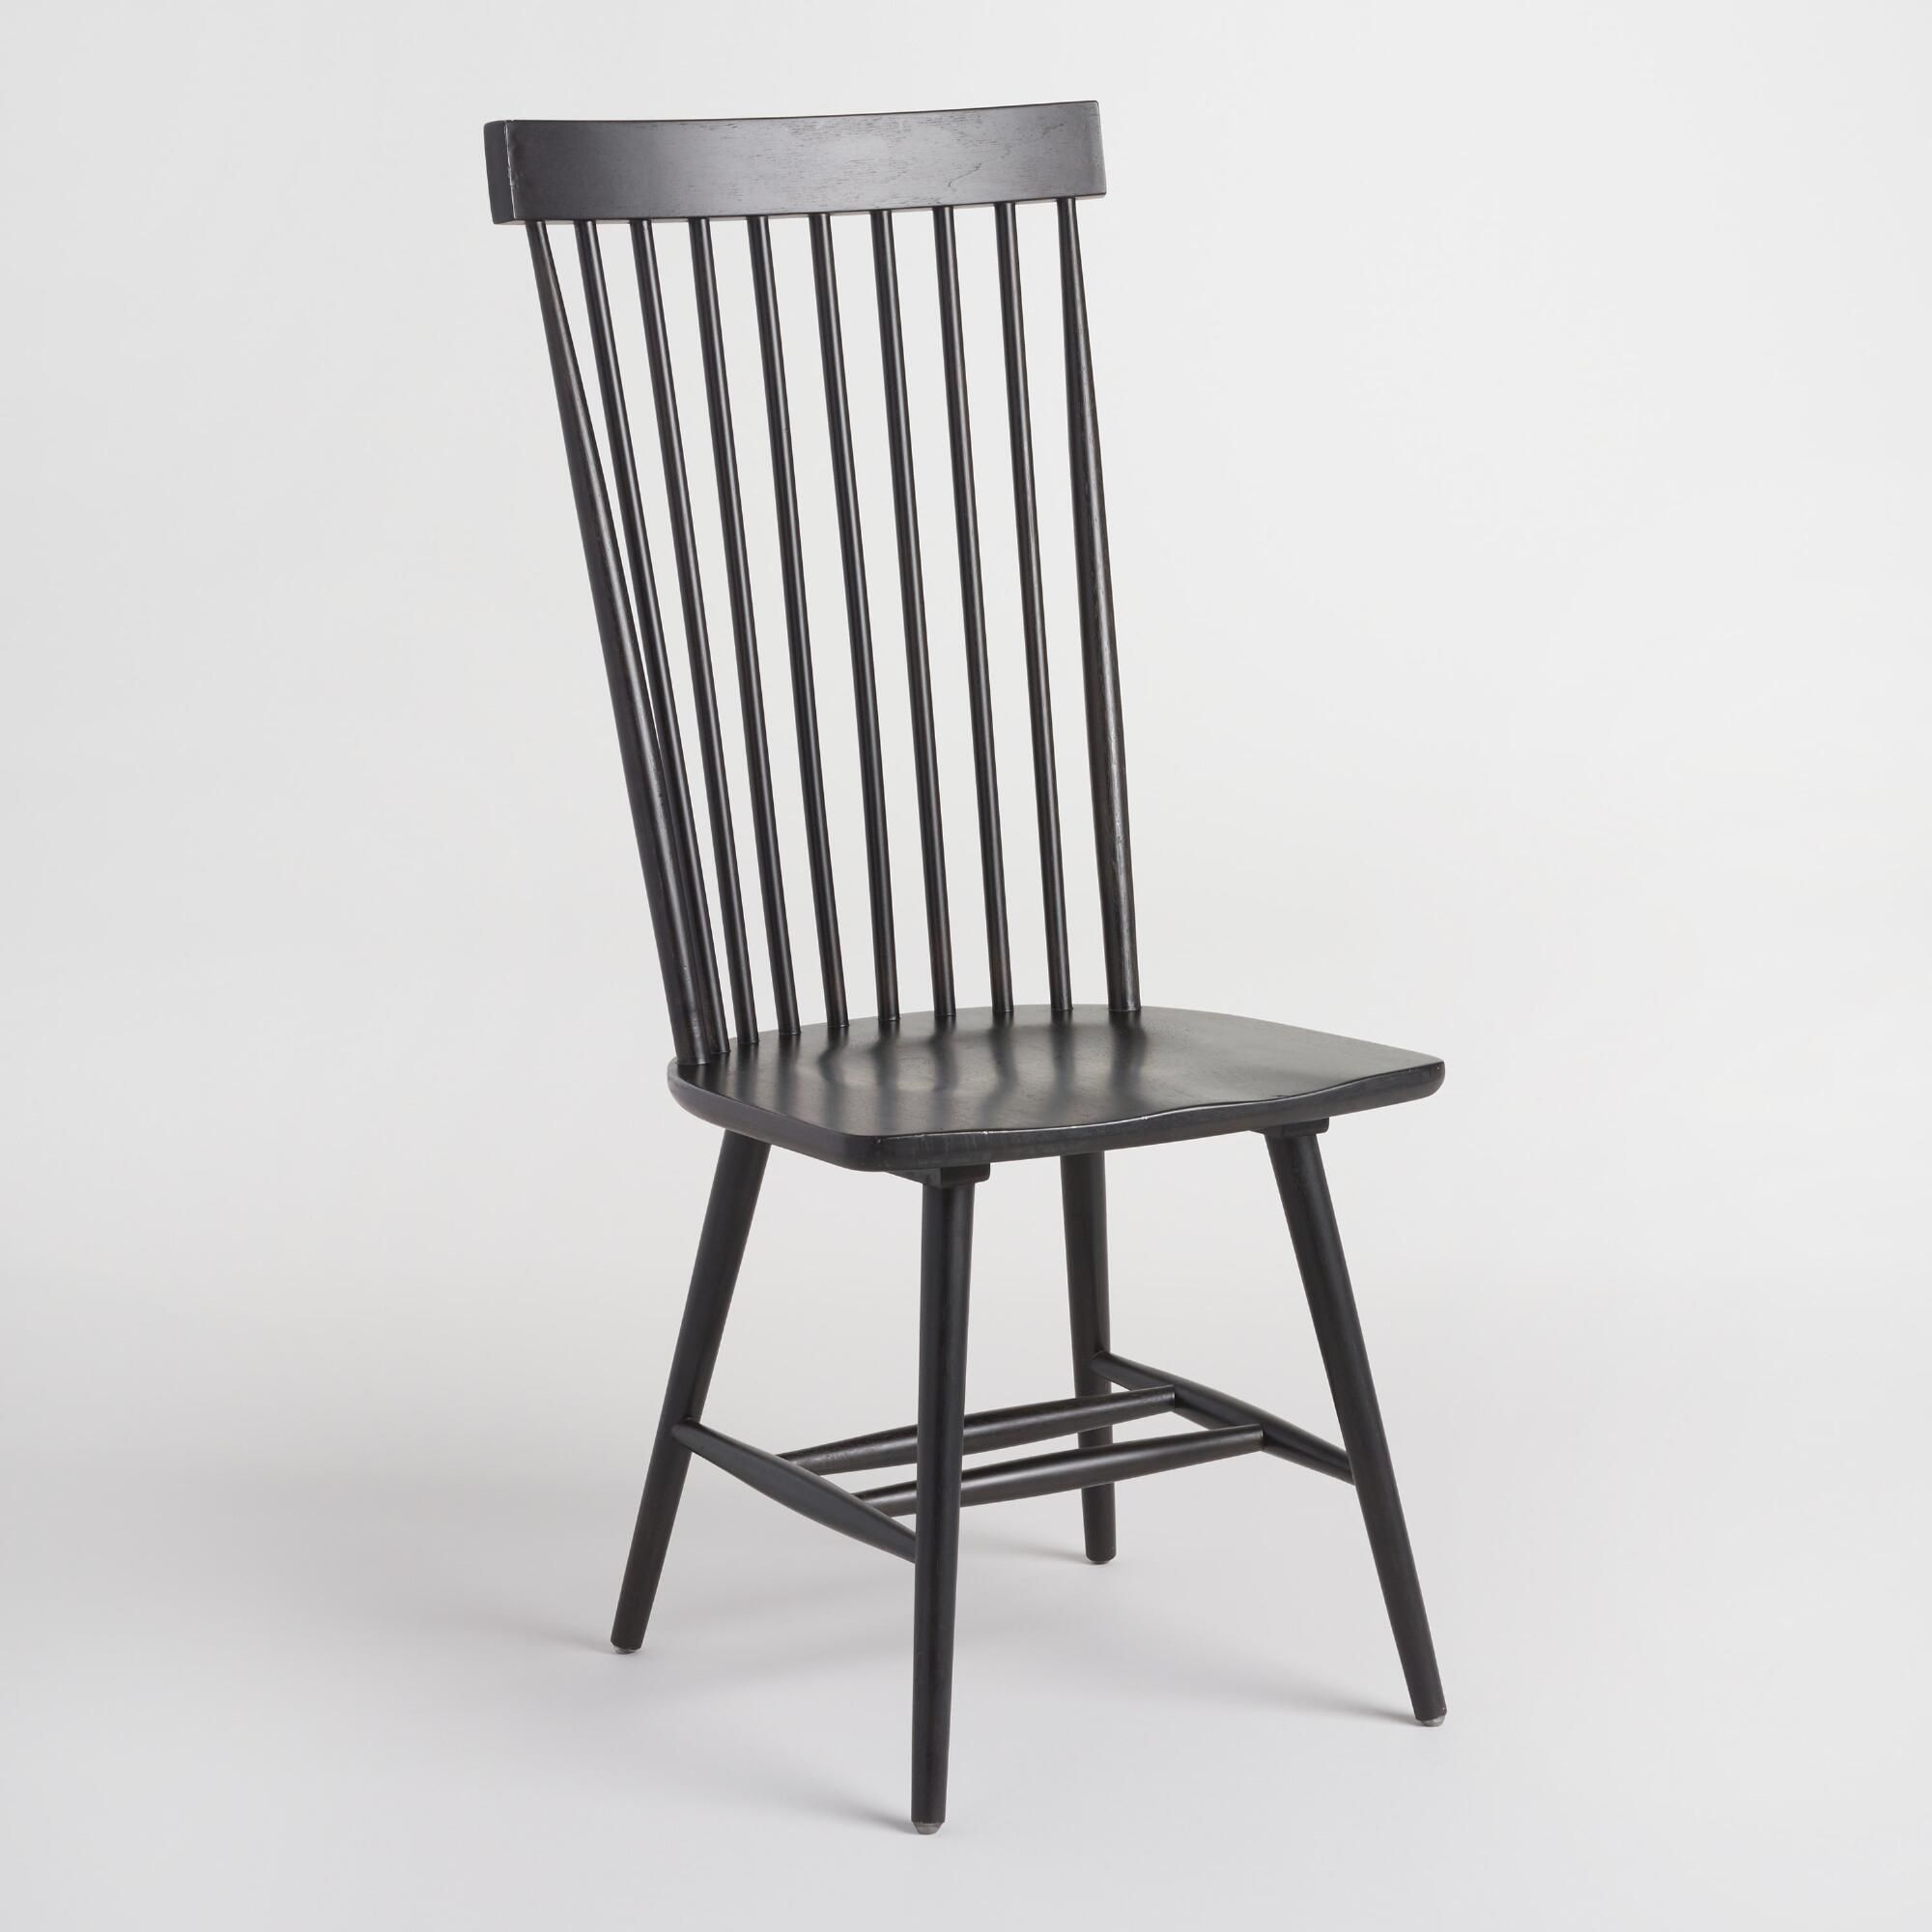 A tall take on traditional Windsor chairs our slender chairs